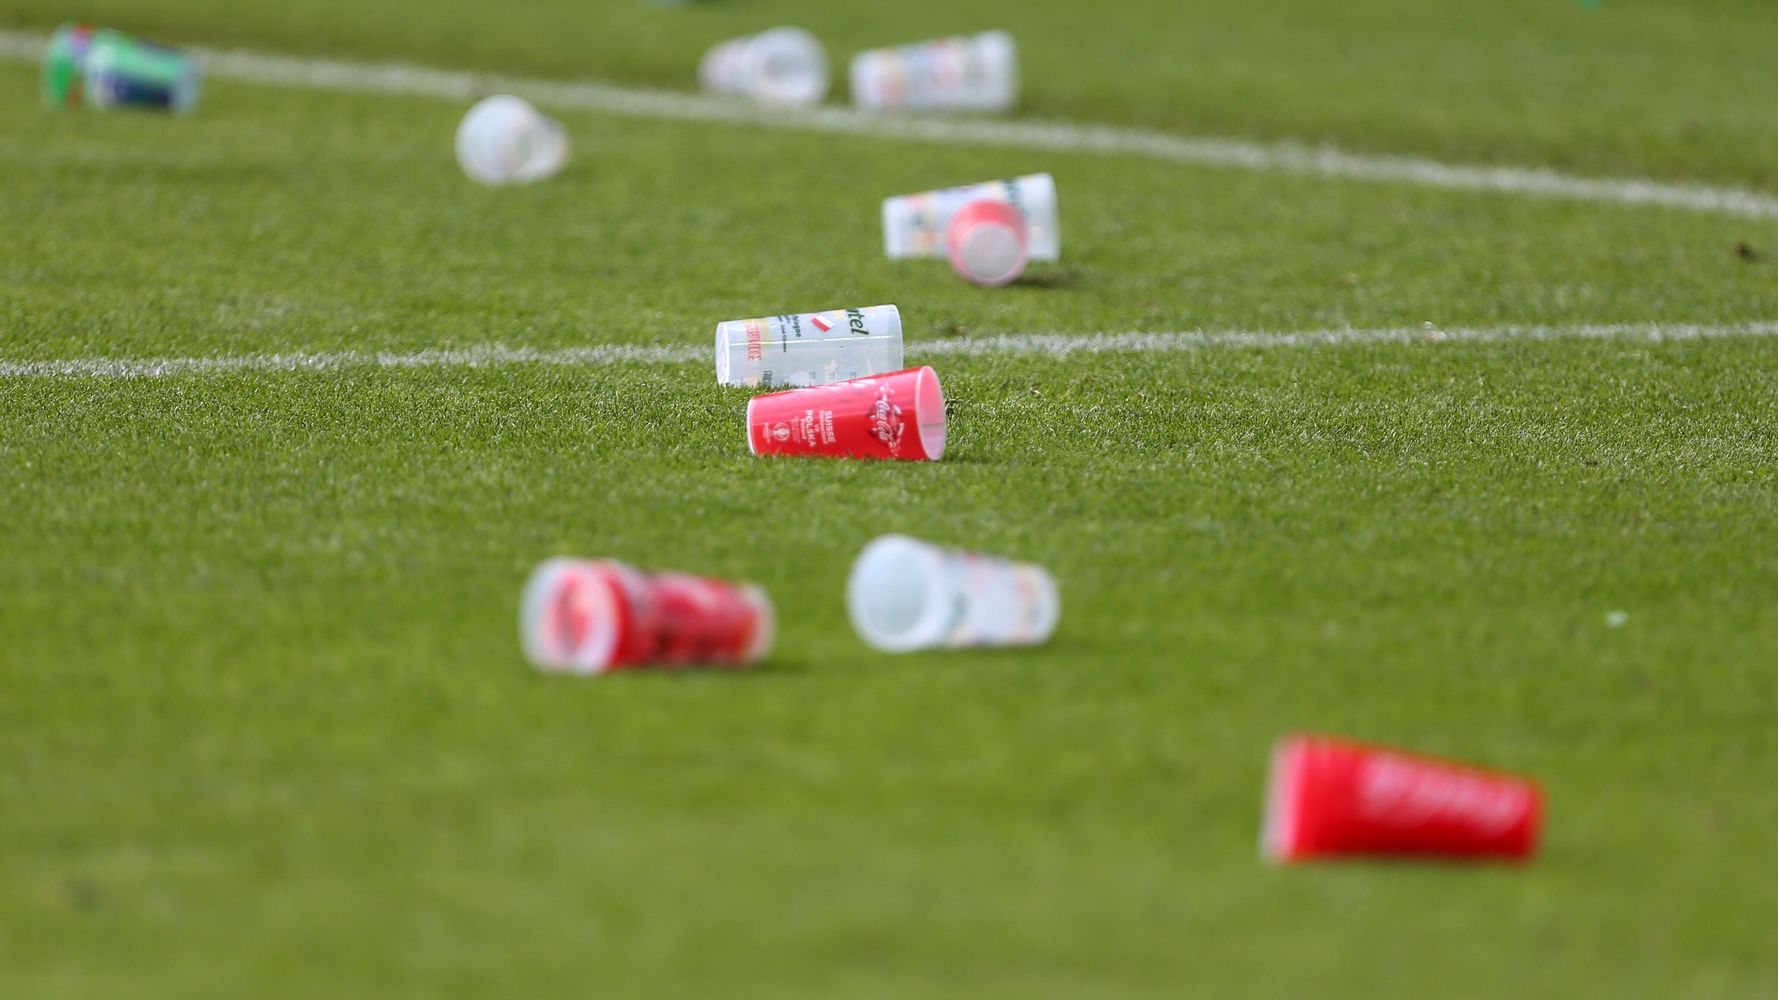 Football Fans Want Their Clubs To Give Single-Use Plastic The Boot